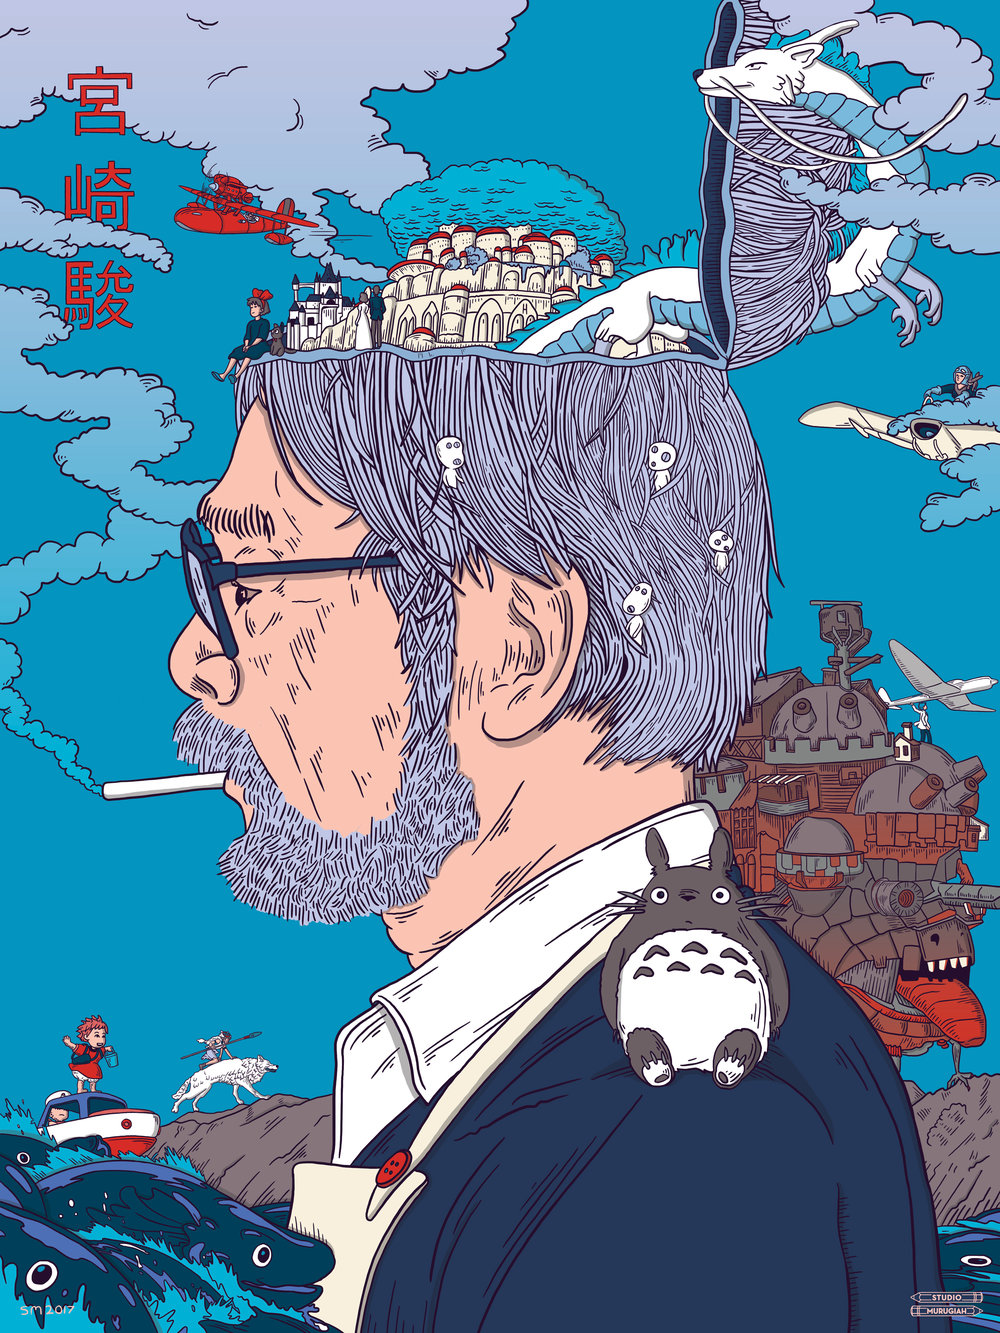 Buy Print Hayao Miyazaki I £40 I Limited edition of 30 (including printing and shipping) 18x24 I Giclée Print I Hahnemühle German Etching paper